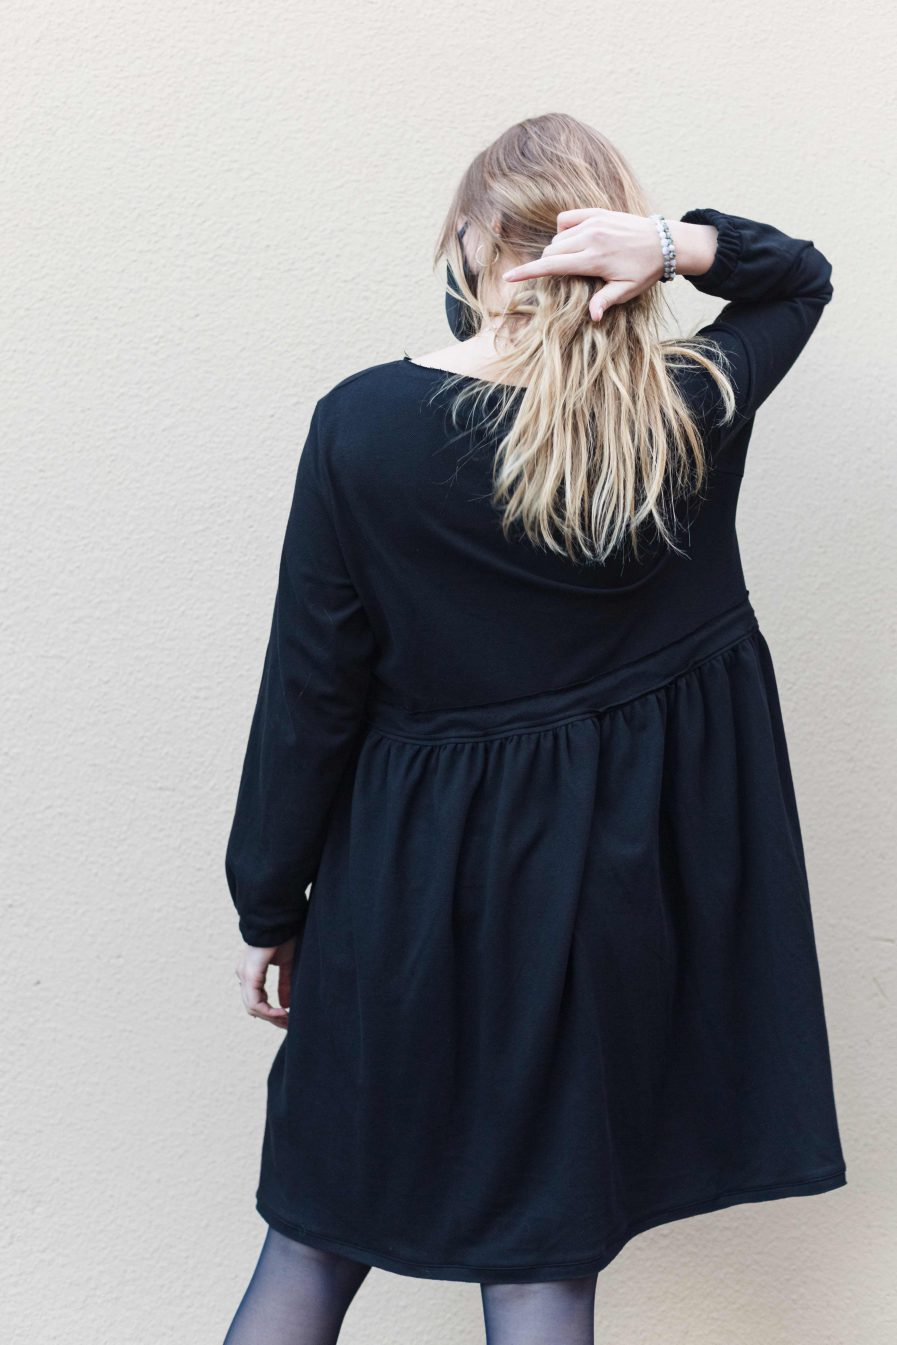 M50 Dress Cute with Pockets Black